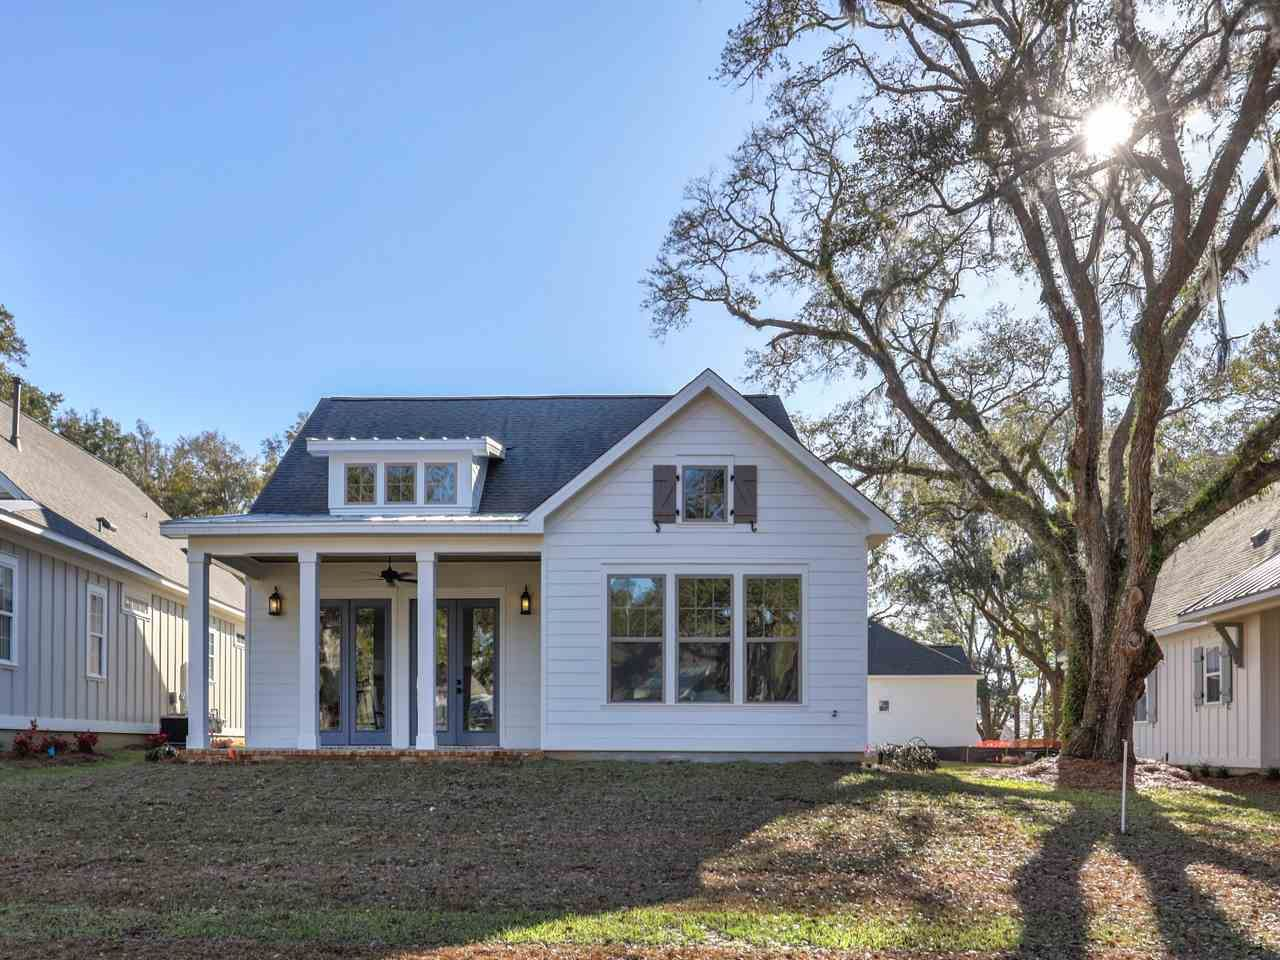 Photo of 37 Tea Blossom Place, TALLAHASSEE, FL 32308 (MLS # 317351)